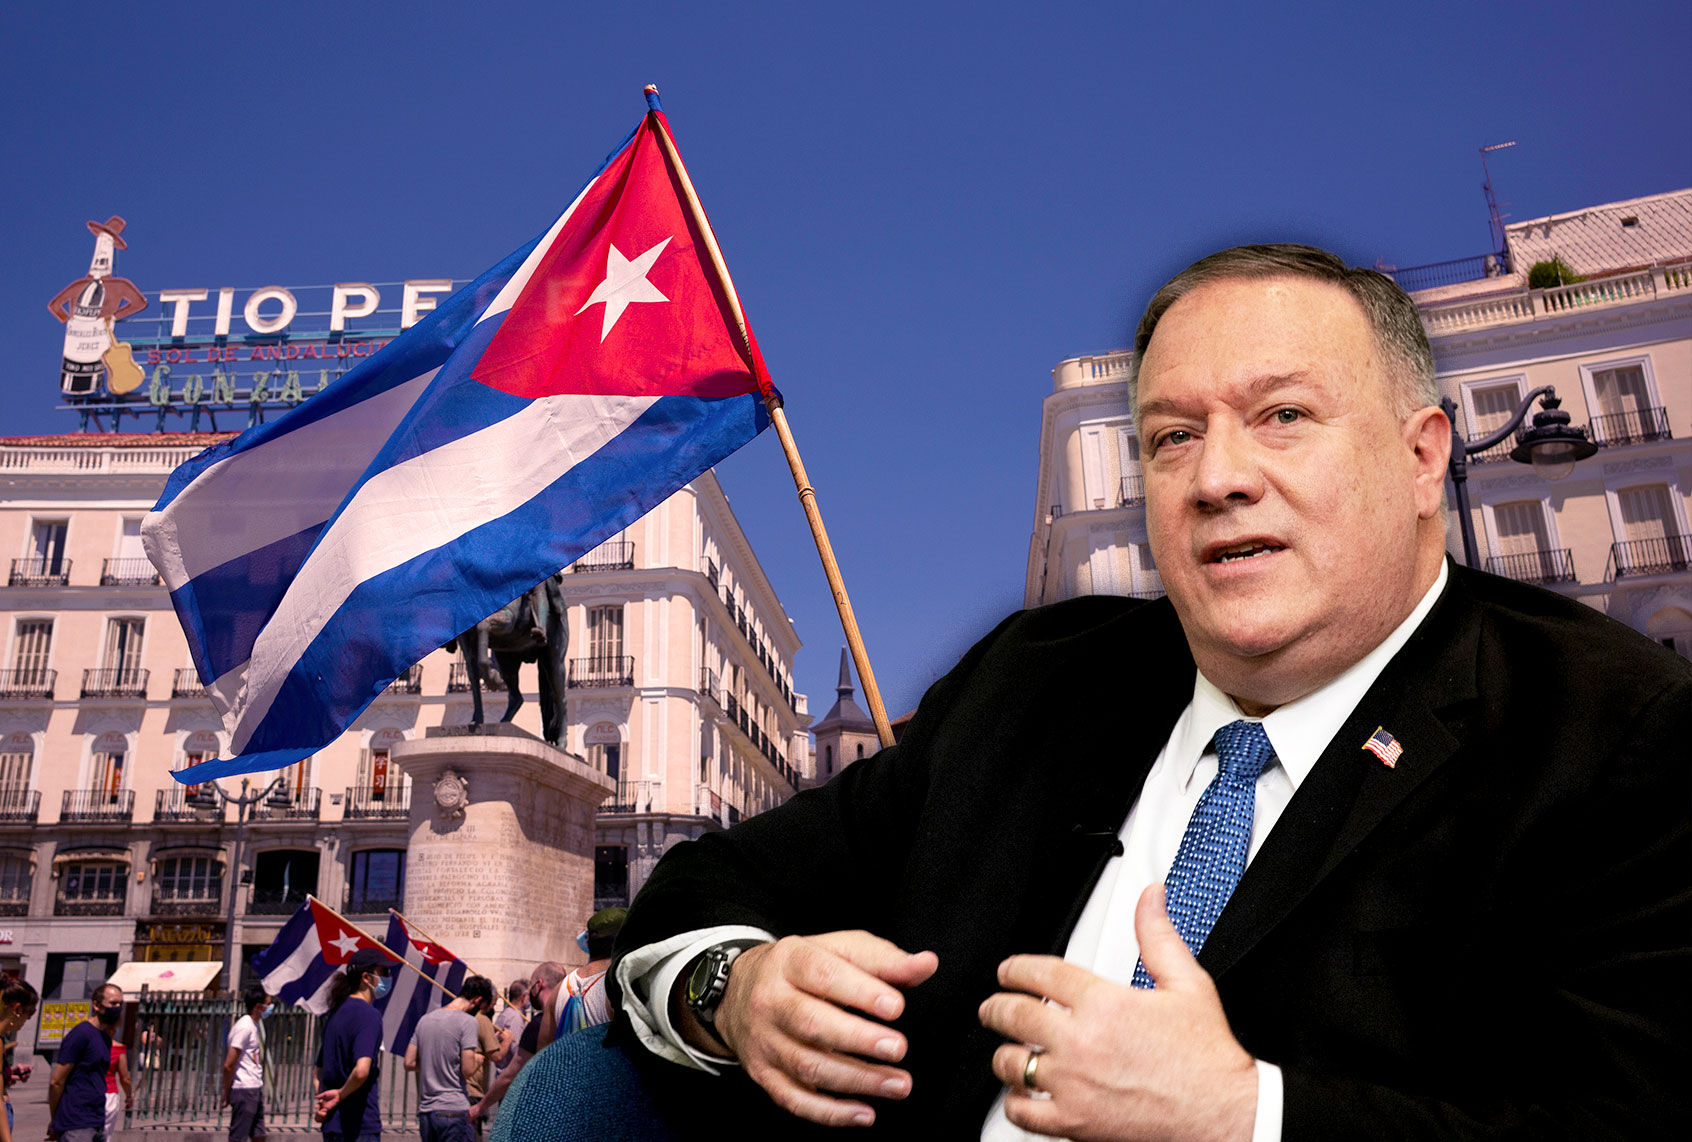 Trump and Mike Pompeo's parting outrage: Falsely accusing Cuba of sponsoring terrorism thumbnail